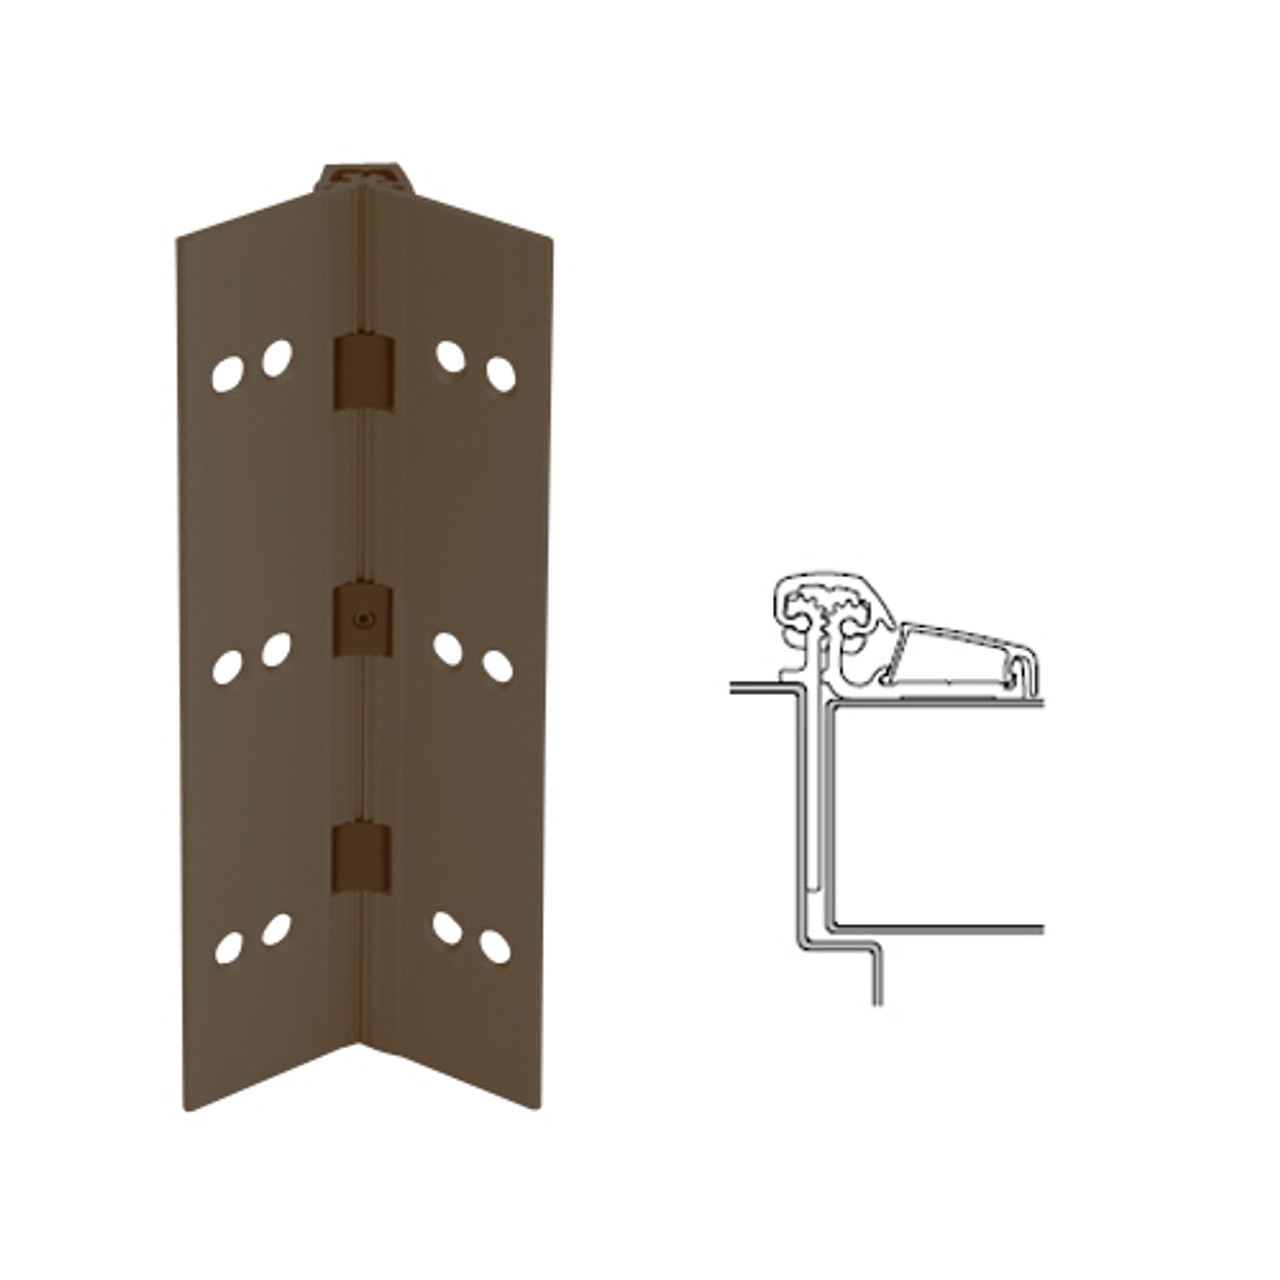 053XY-313AN-95 IVES Adjustable Half Surface Continuous Geared Hinges in Dark Bronze Anodized